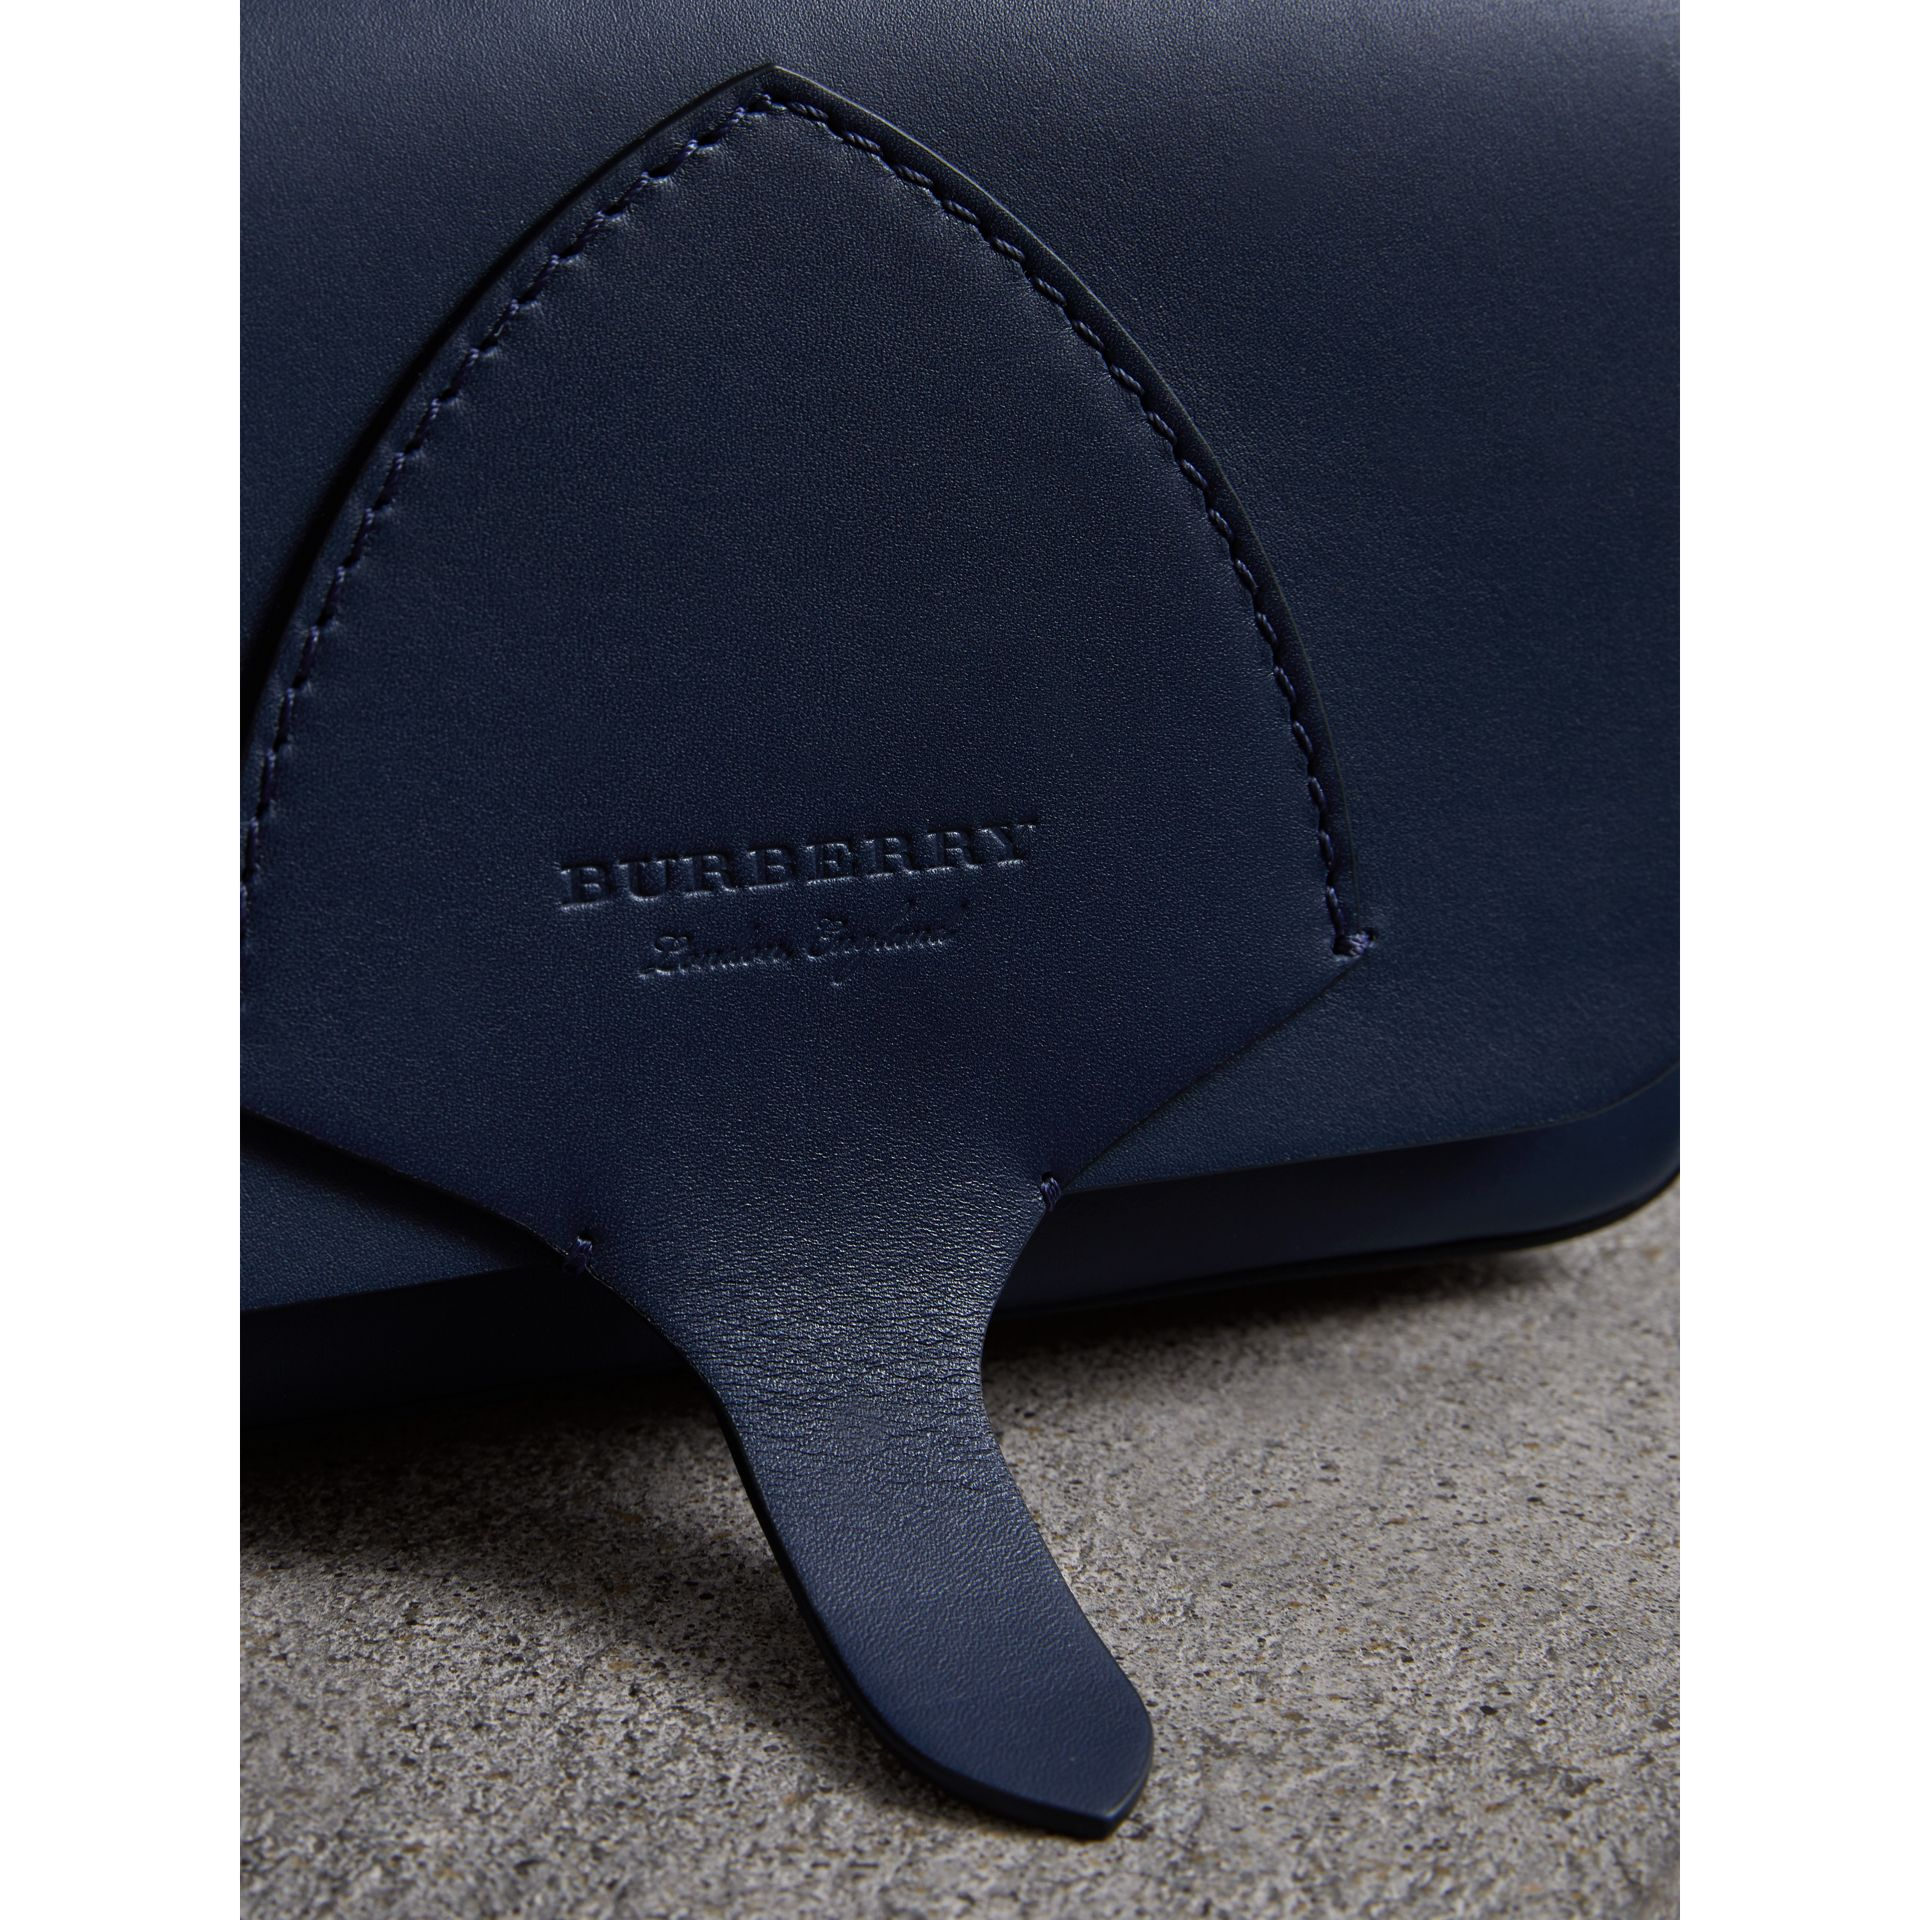 Equestrian Shield Leather Wallet with Detachable Strap in Mid Indigo - Women | Burberry Singapore - gallery image 1